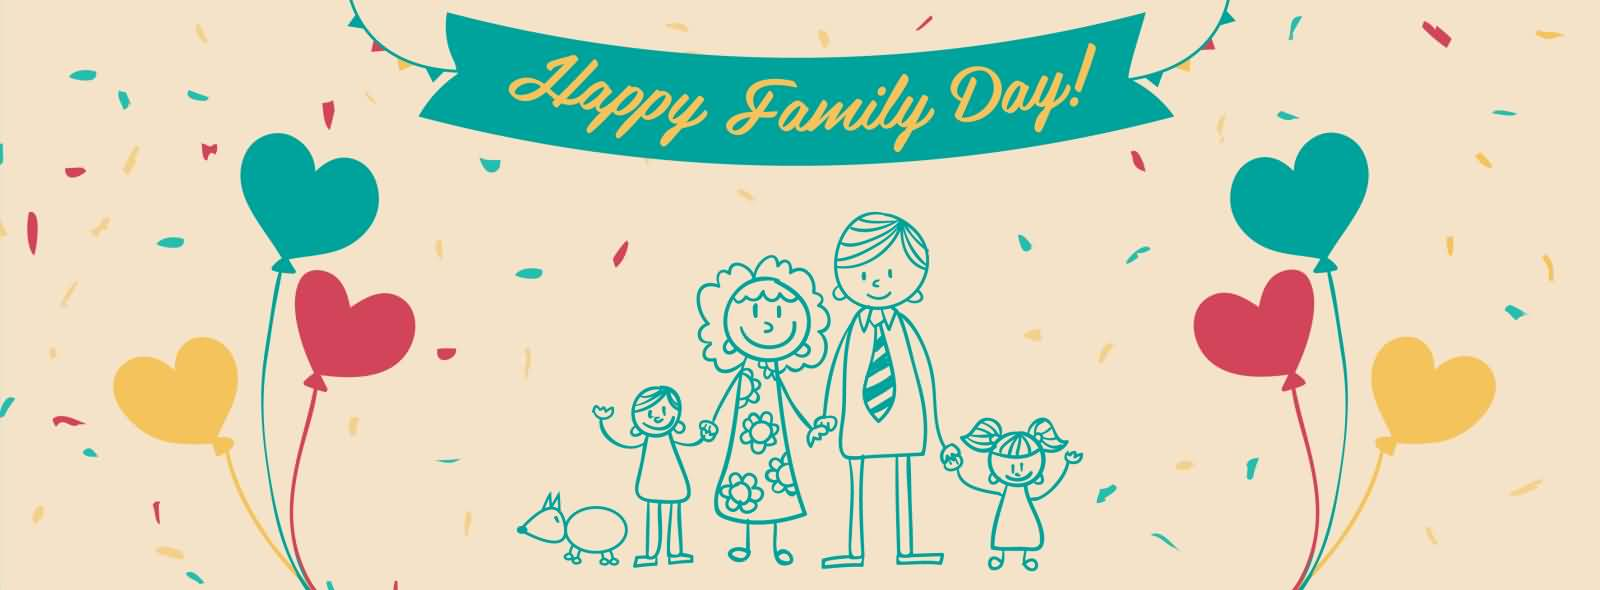 50 Best Family Day 2017 Wish Pictures